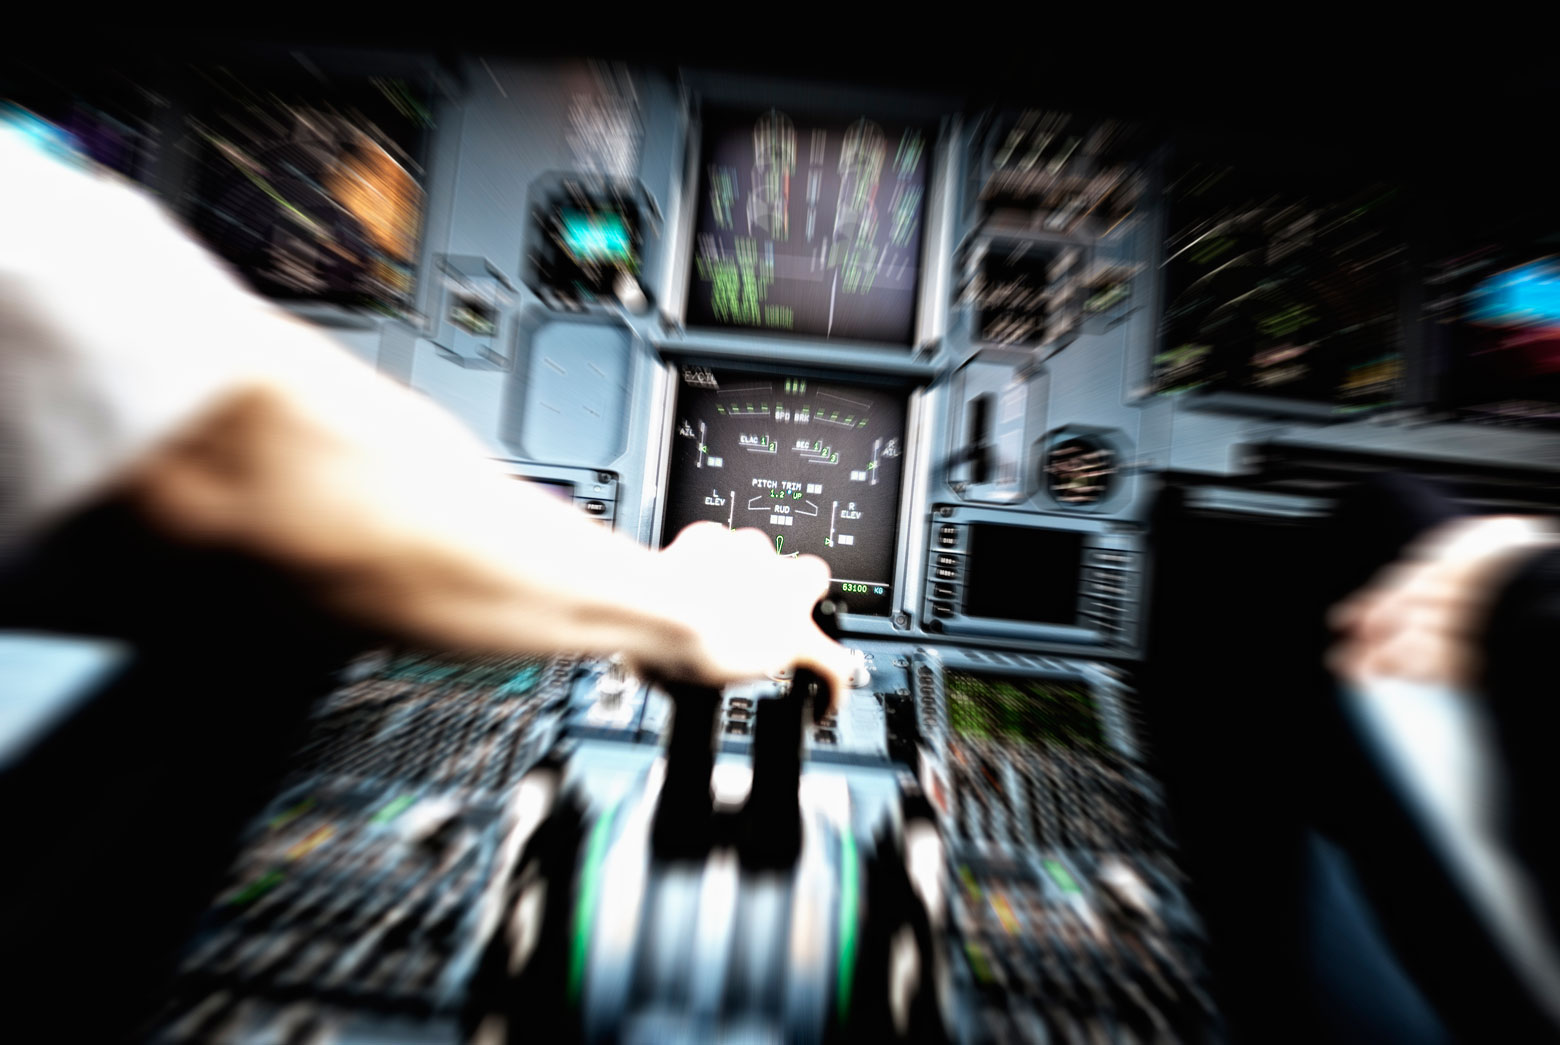 Airplane pilot's arm grips the lever on the control pad